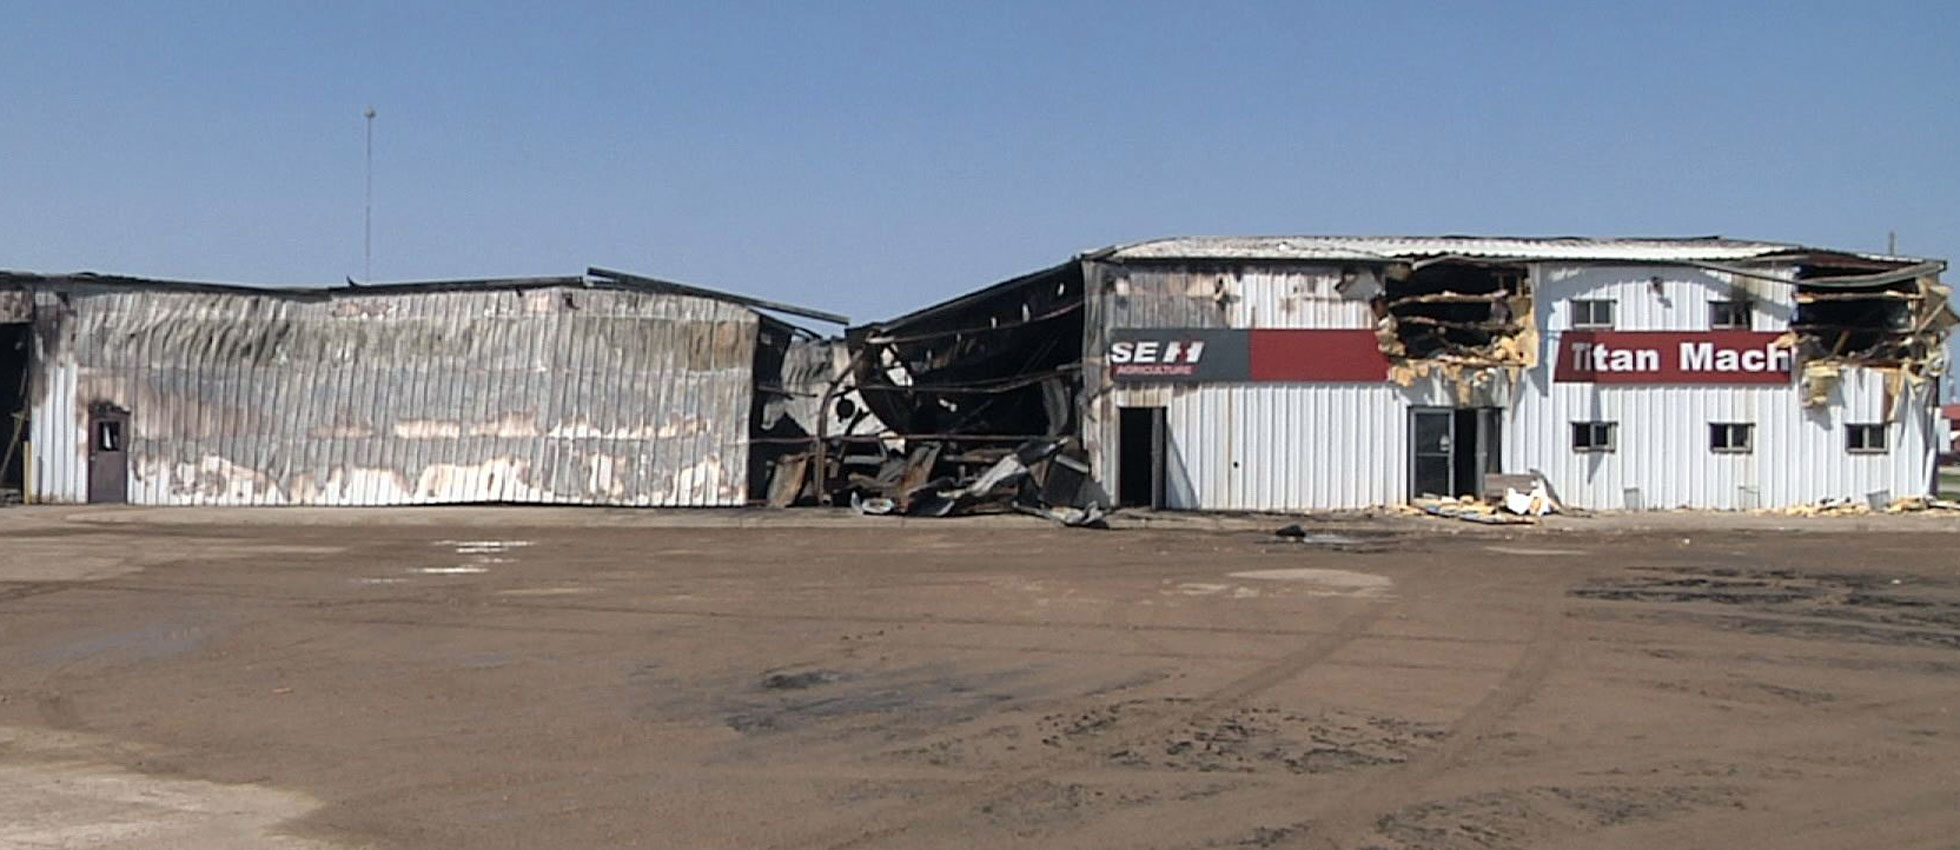 Keloland Auto Mall >> Titan Machinery Moving Forward After Milbank Fire